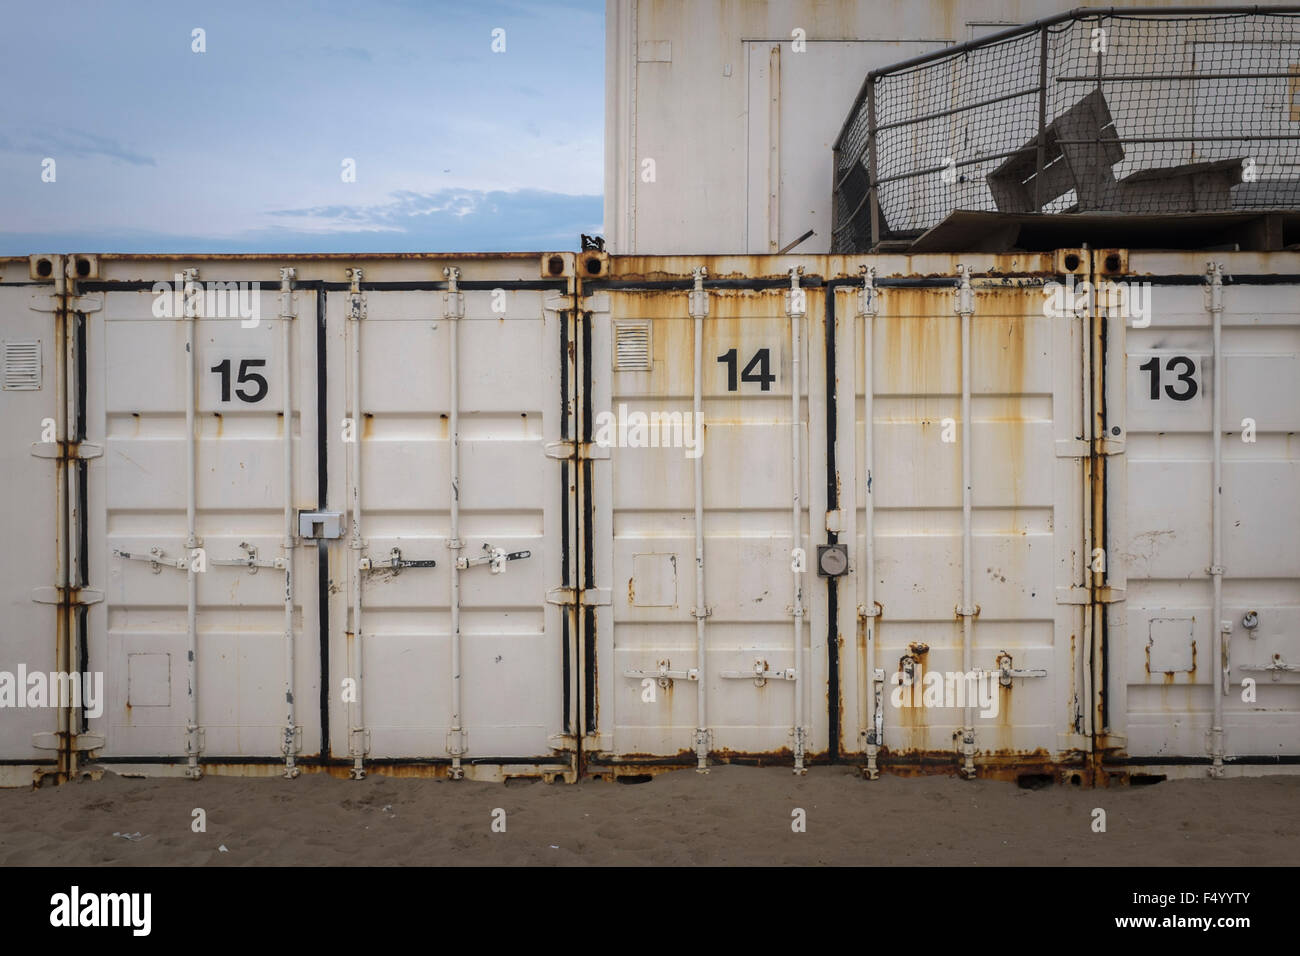 Shipping containers used for storage at Katwijk, Netherlands - Stock Image